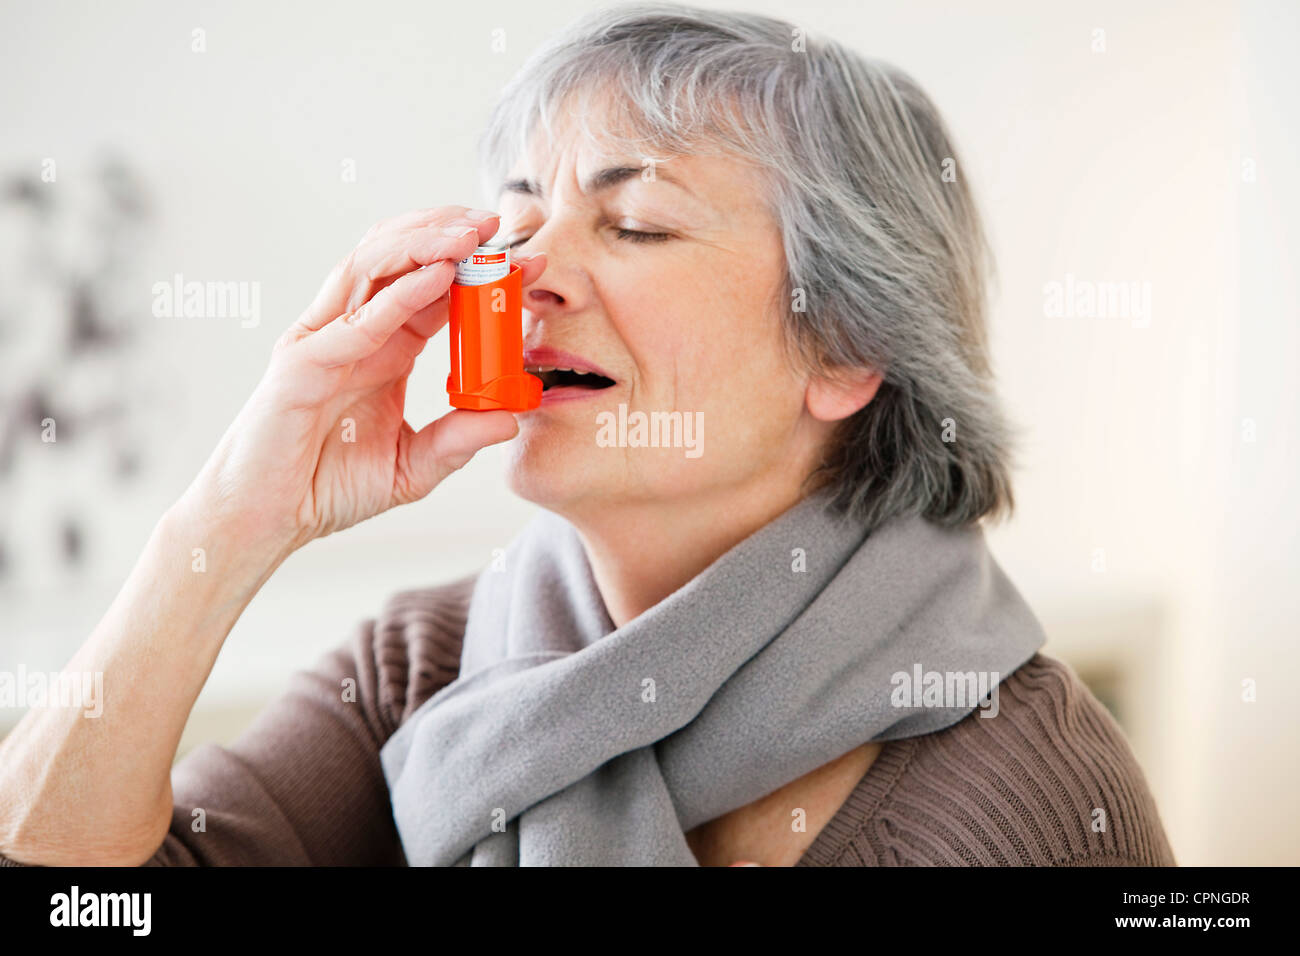 ASTHMA TREATMENT, ELDERLY PERSON - Stock Image